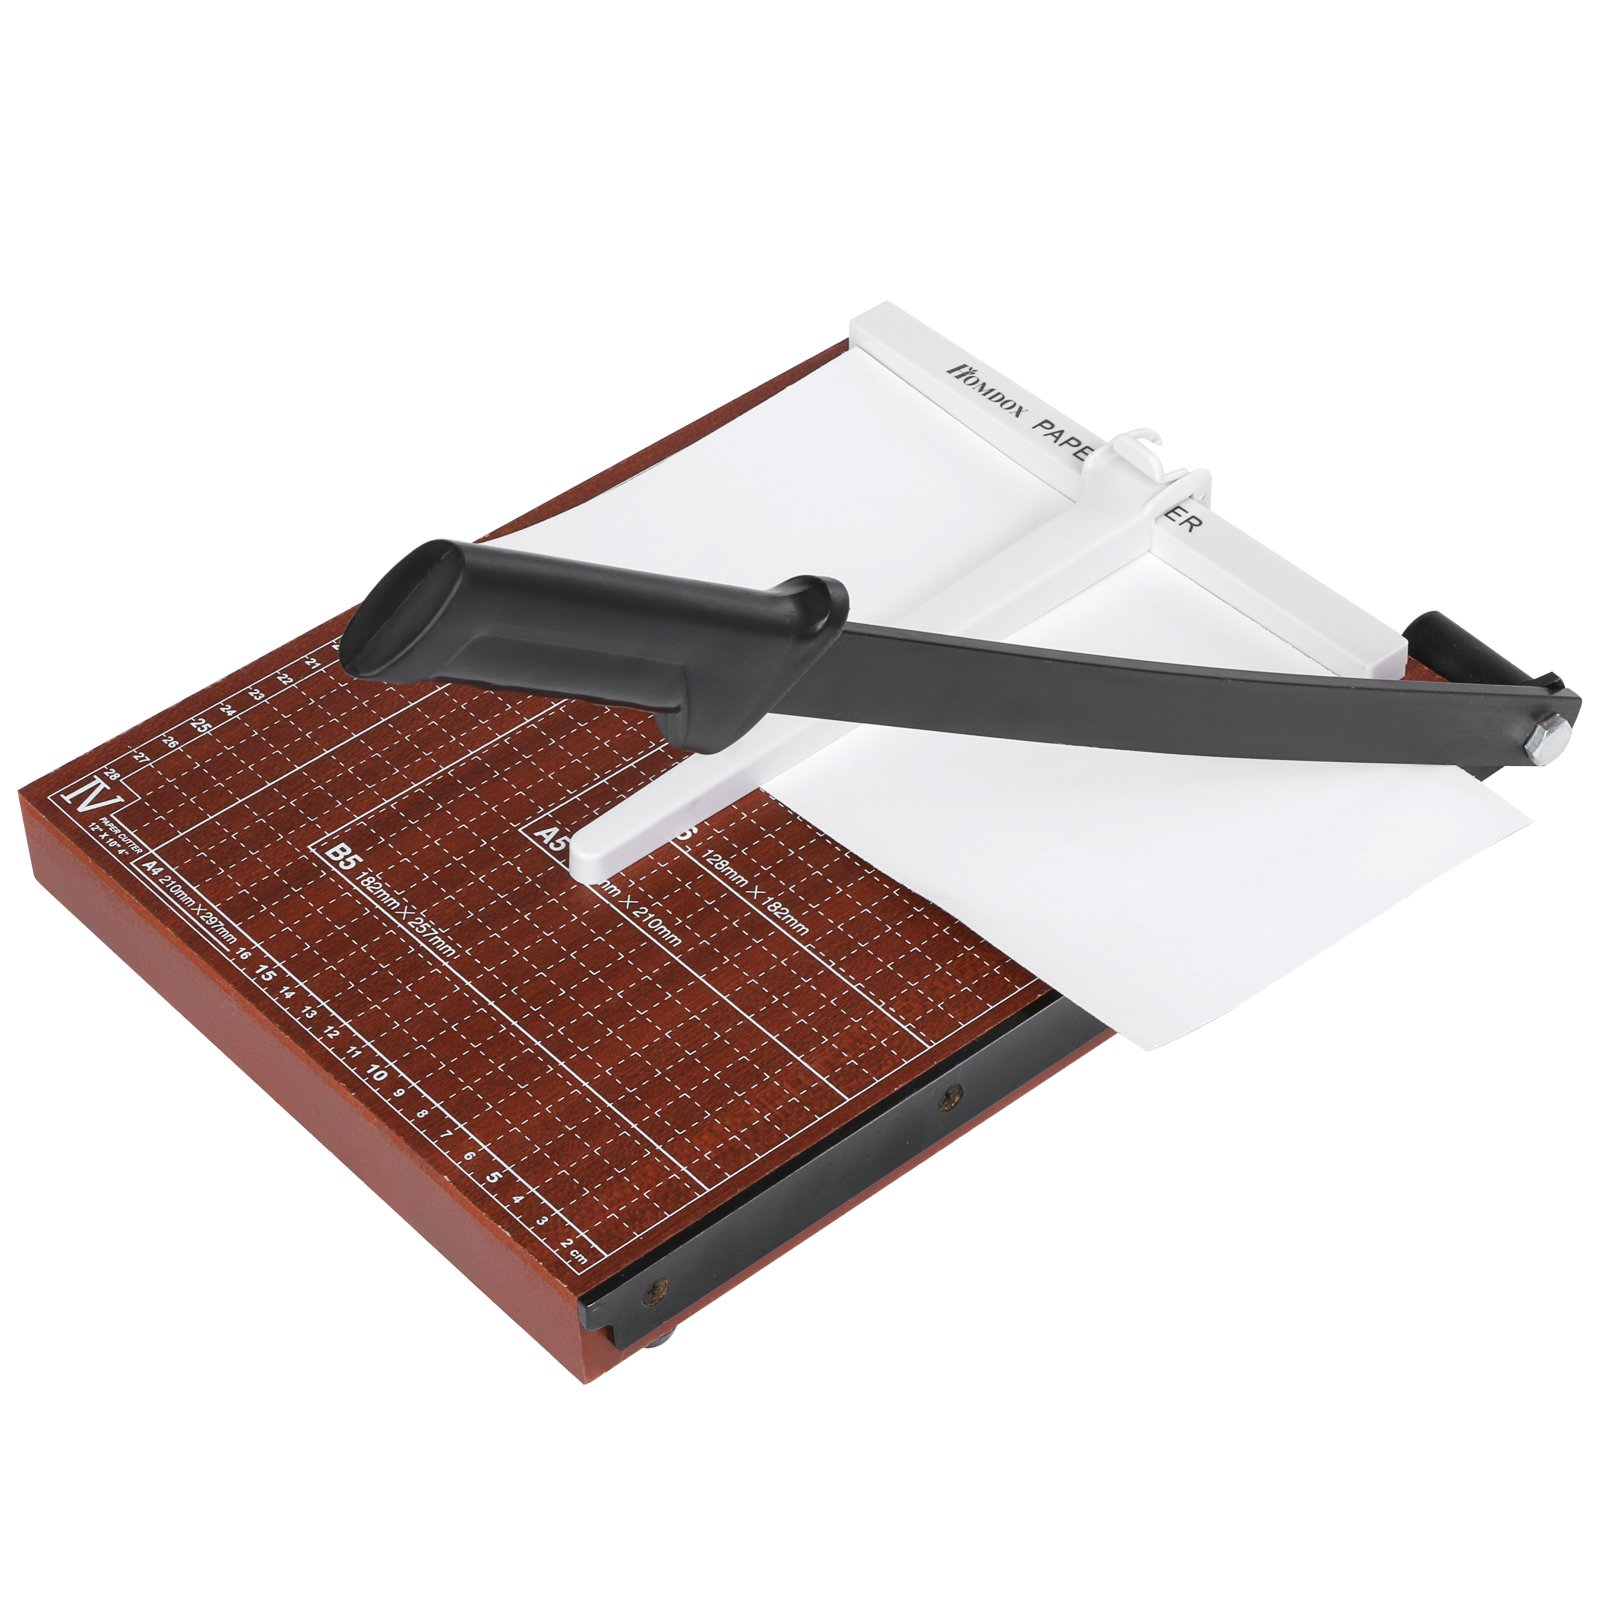 shaofu 12 Inch Paper Trimmer Cutter Heavy Duty Guillotine 12 Sheets Capacity, Cutting Paper Machine (Red)